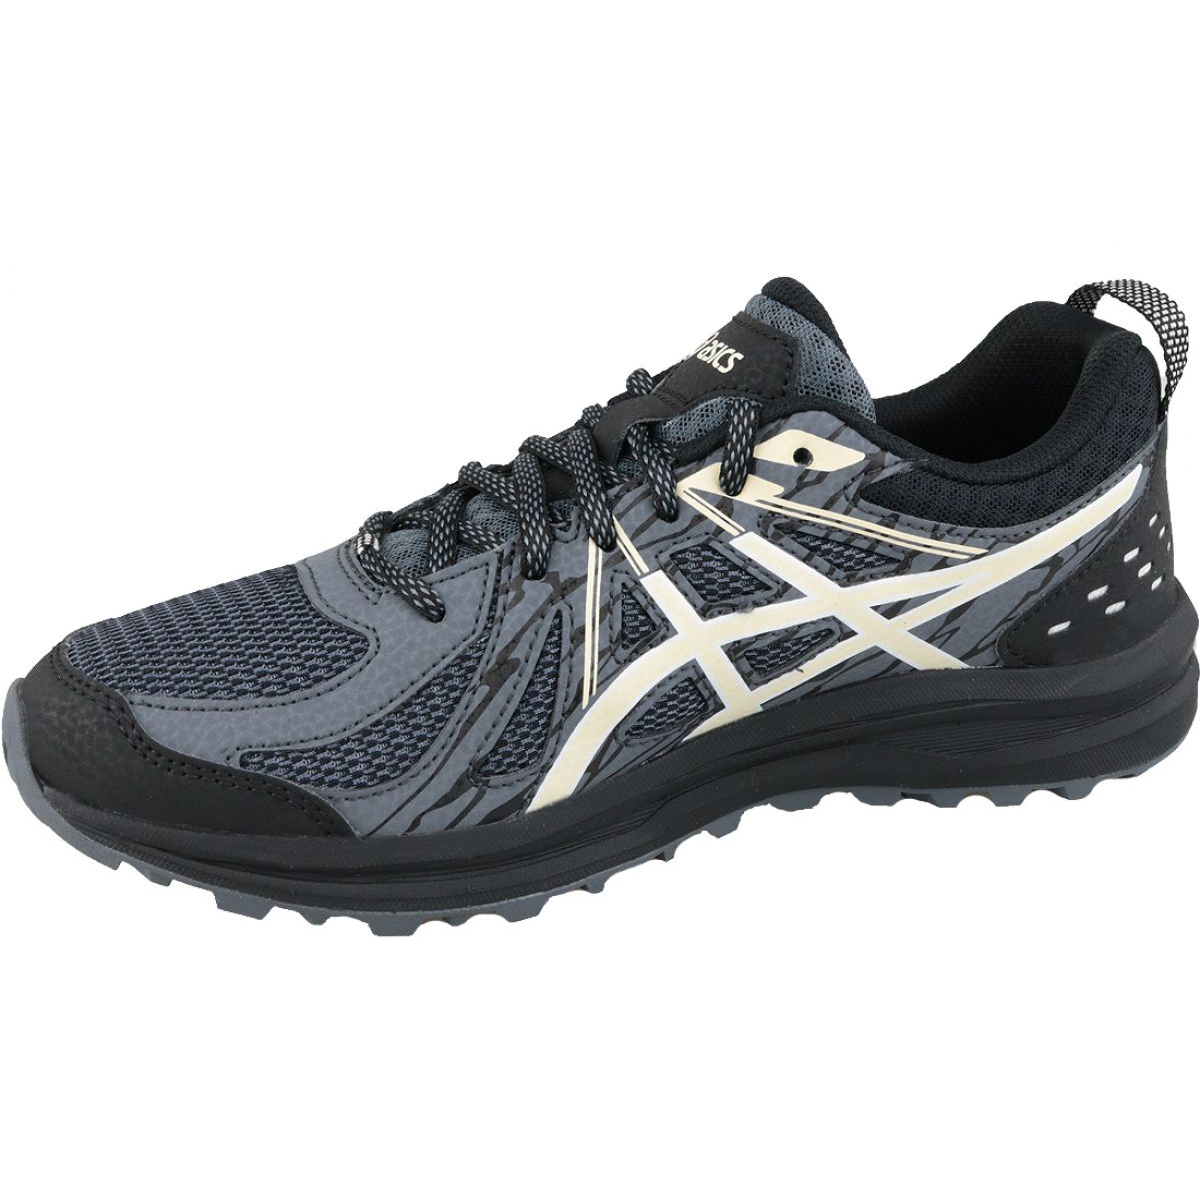 Asics Frequent Trail M 1011A034-005 running shoes grey